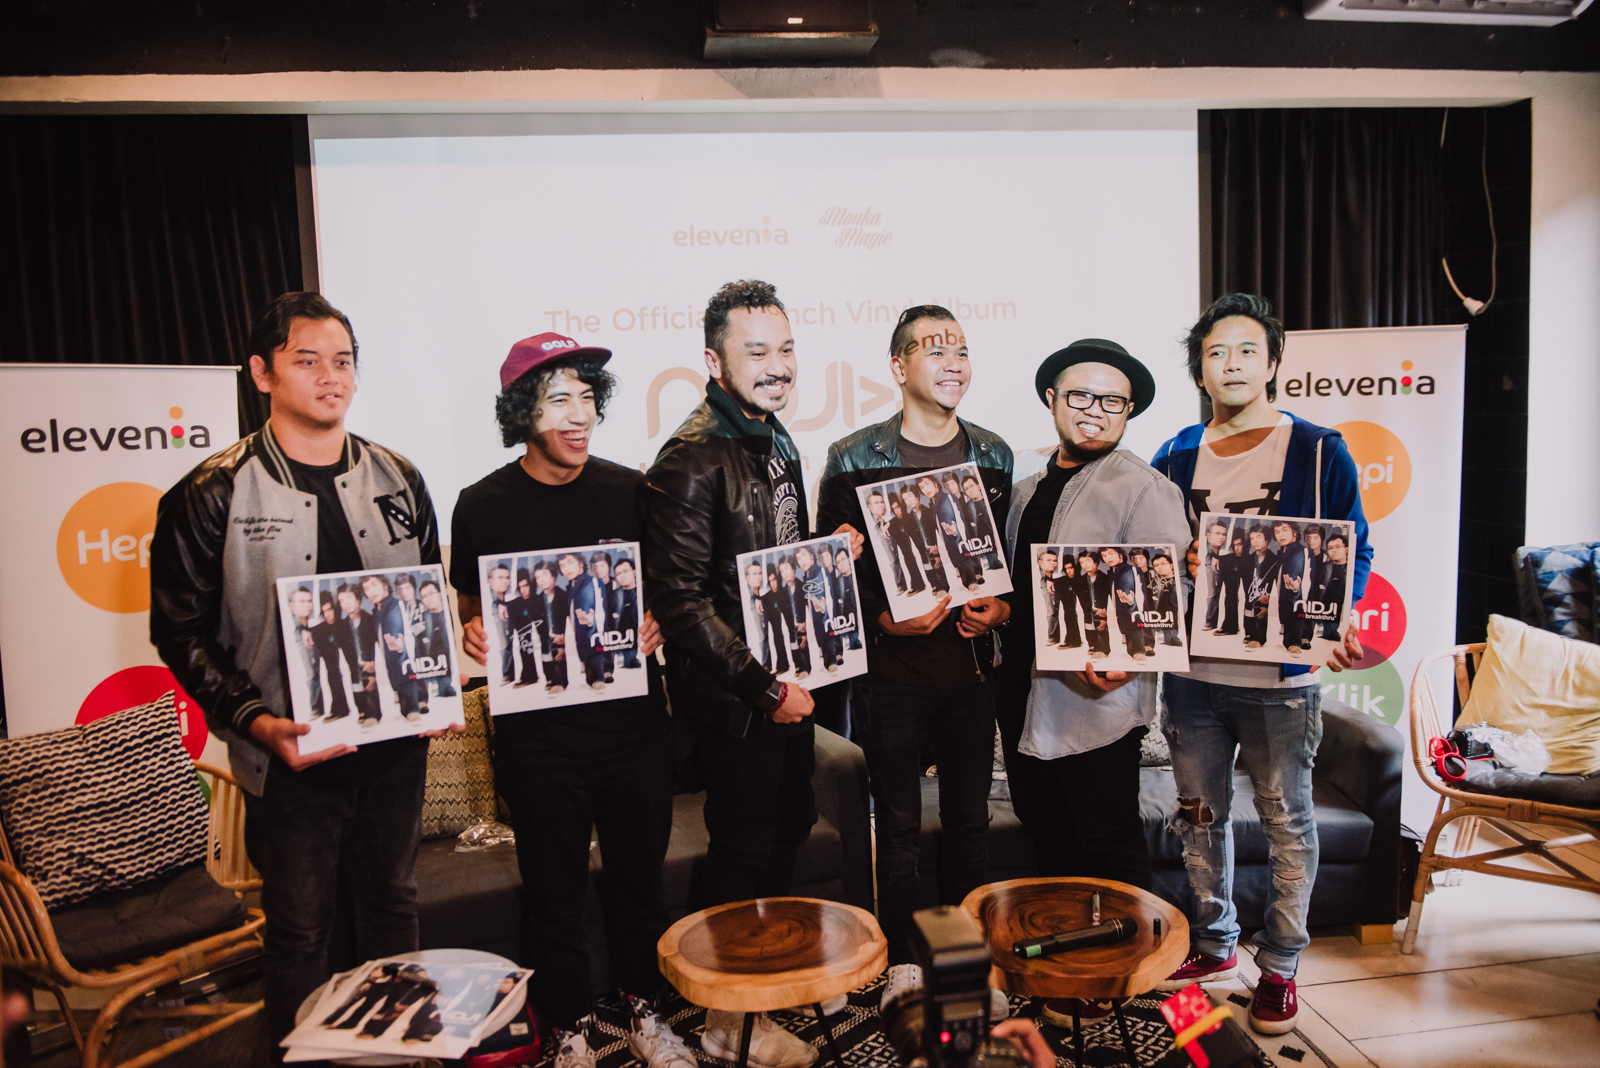 Nidji produly presents you their Breakthru album on vinyl.